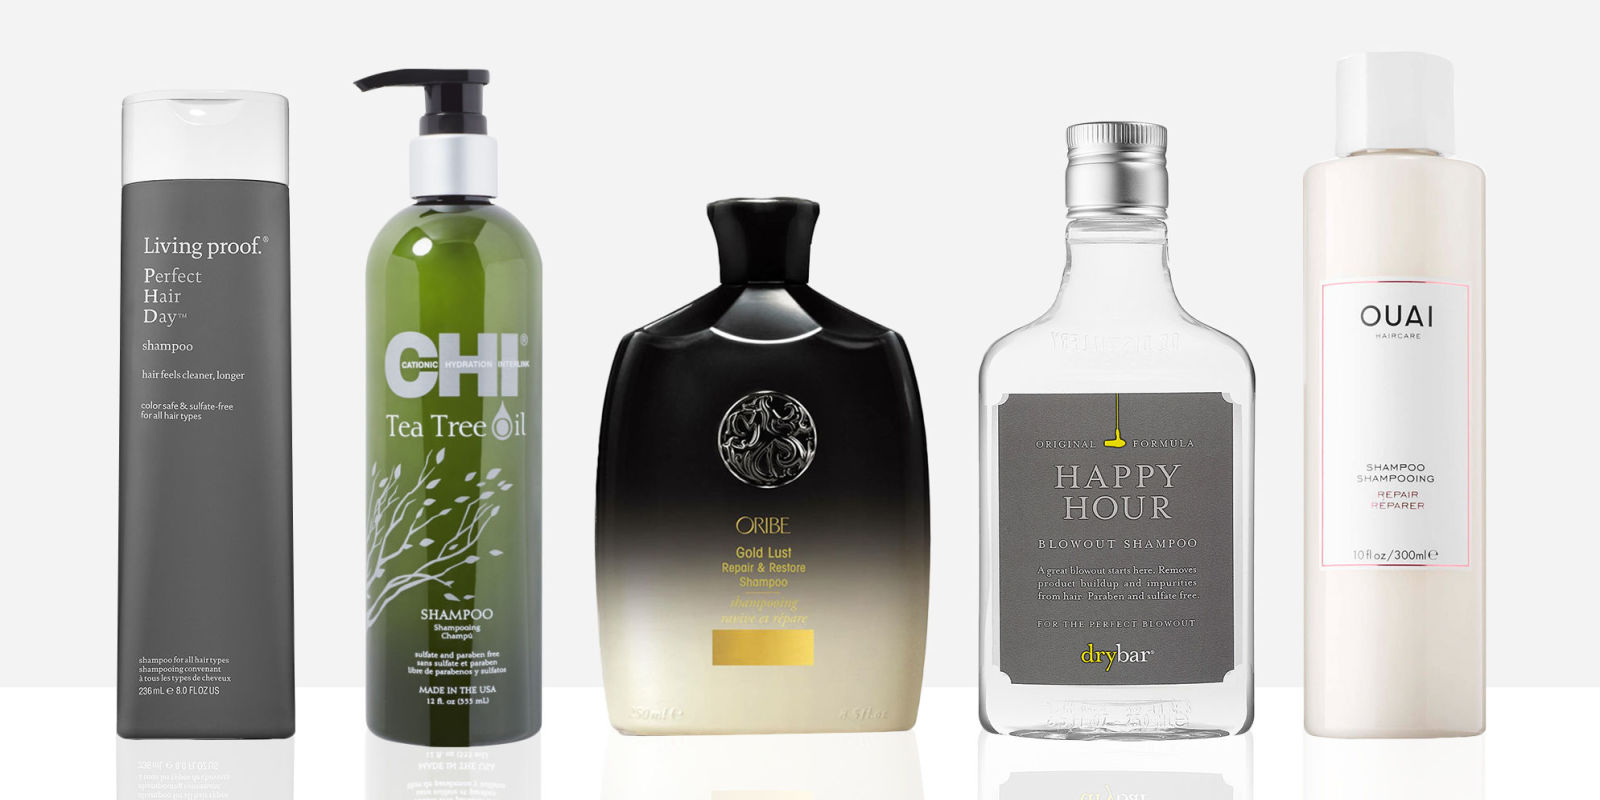 10 Best Shampoo Brands For Healthy Hair In 2017 Top